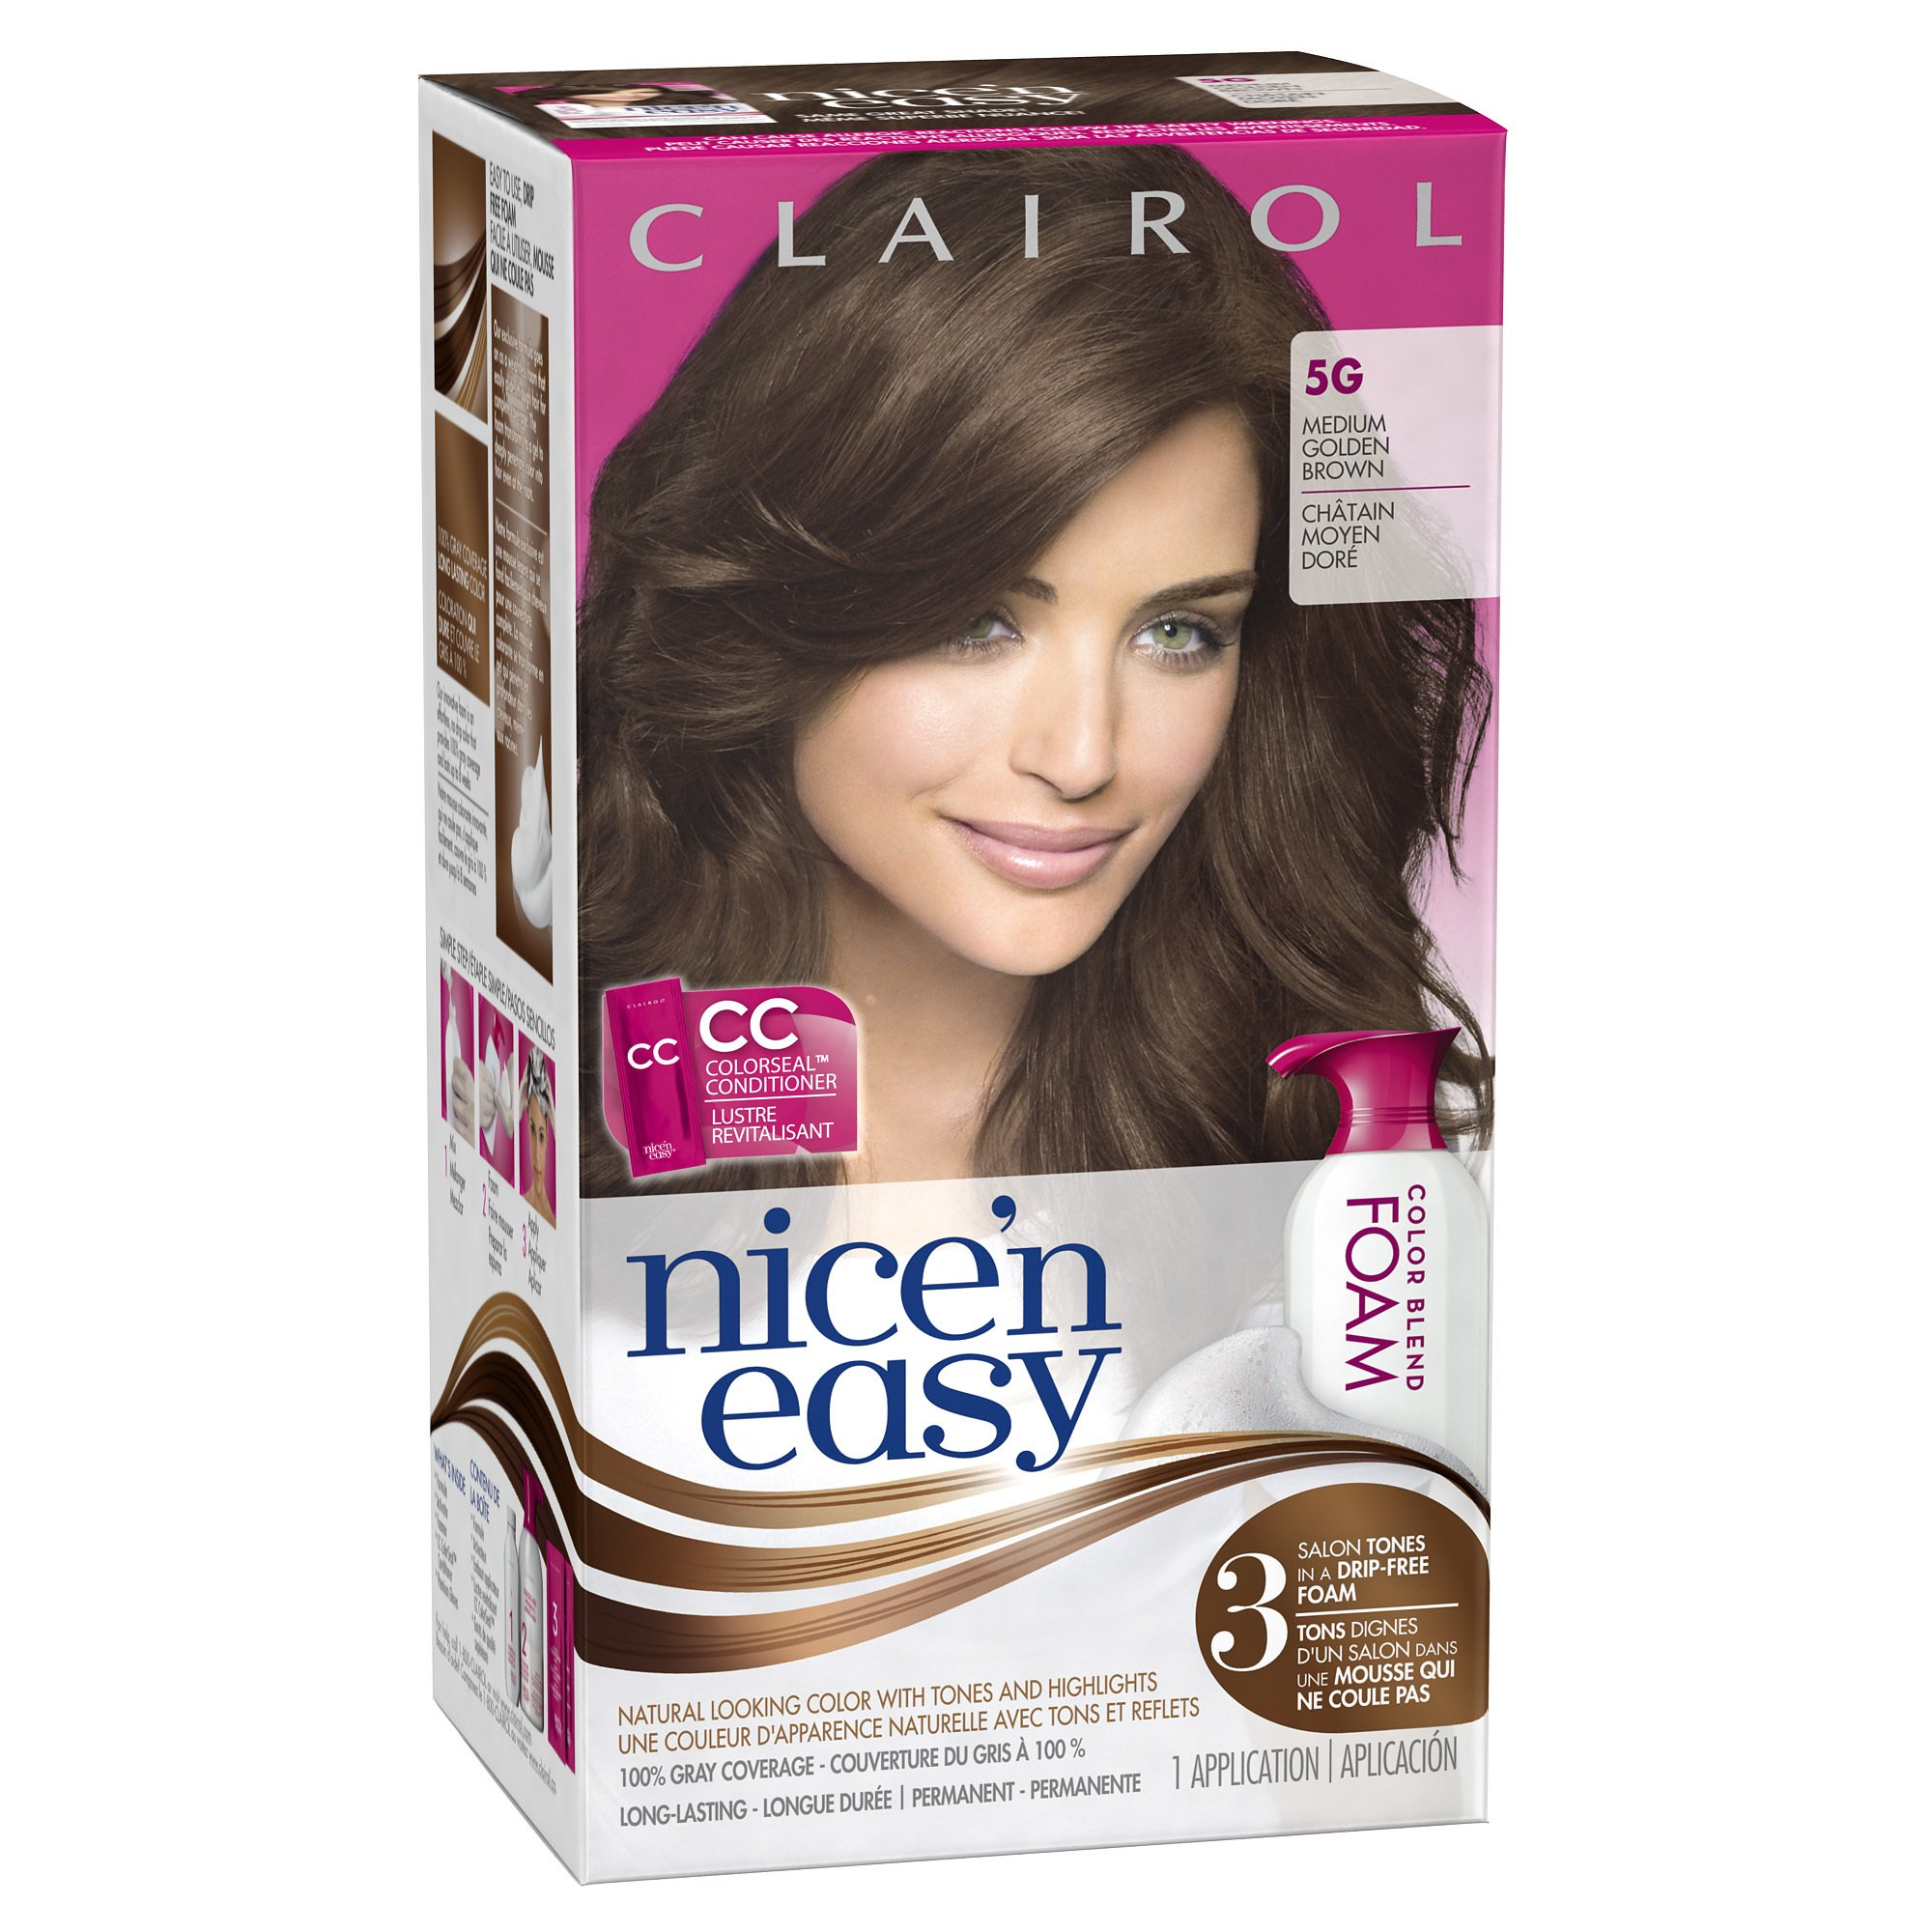 Amazon.com : Clairol Nice n Easy Color Blend Foam Hair Color, 5G, Medium Golden Brown, 2 pk